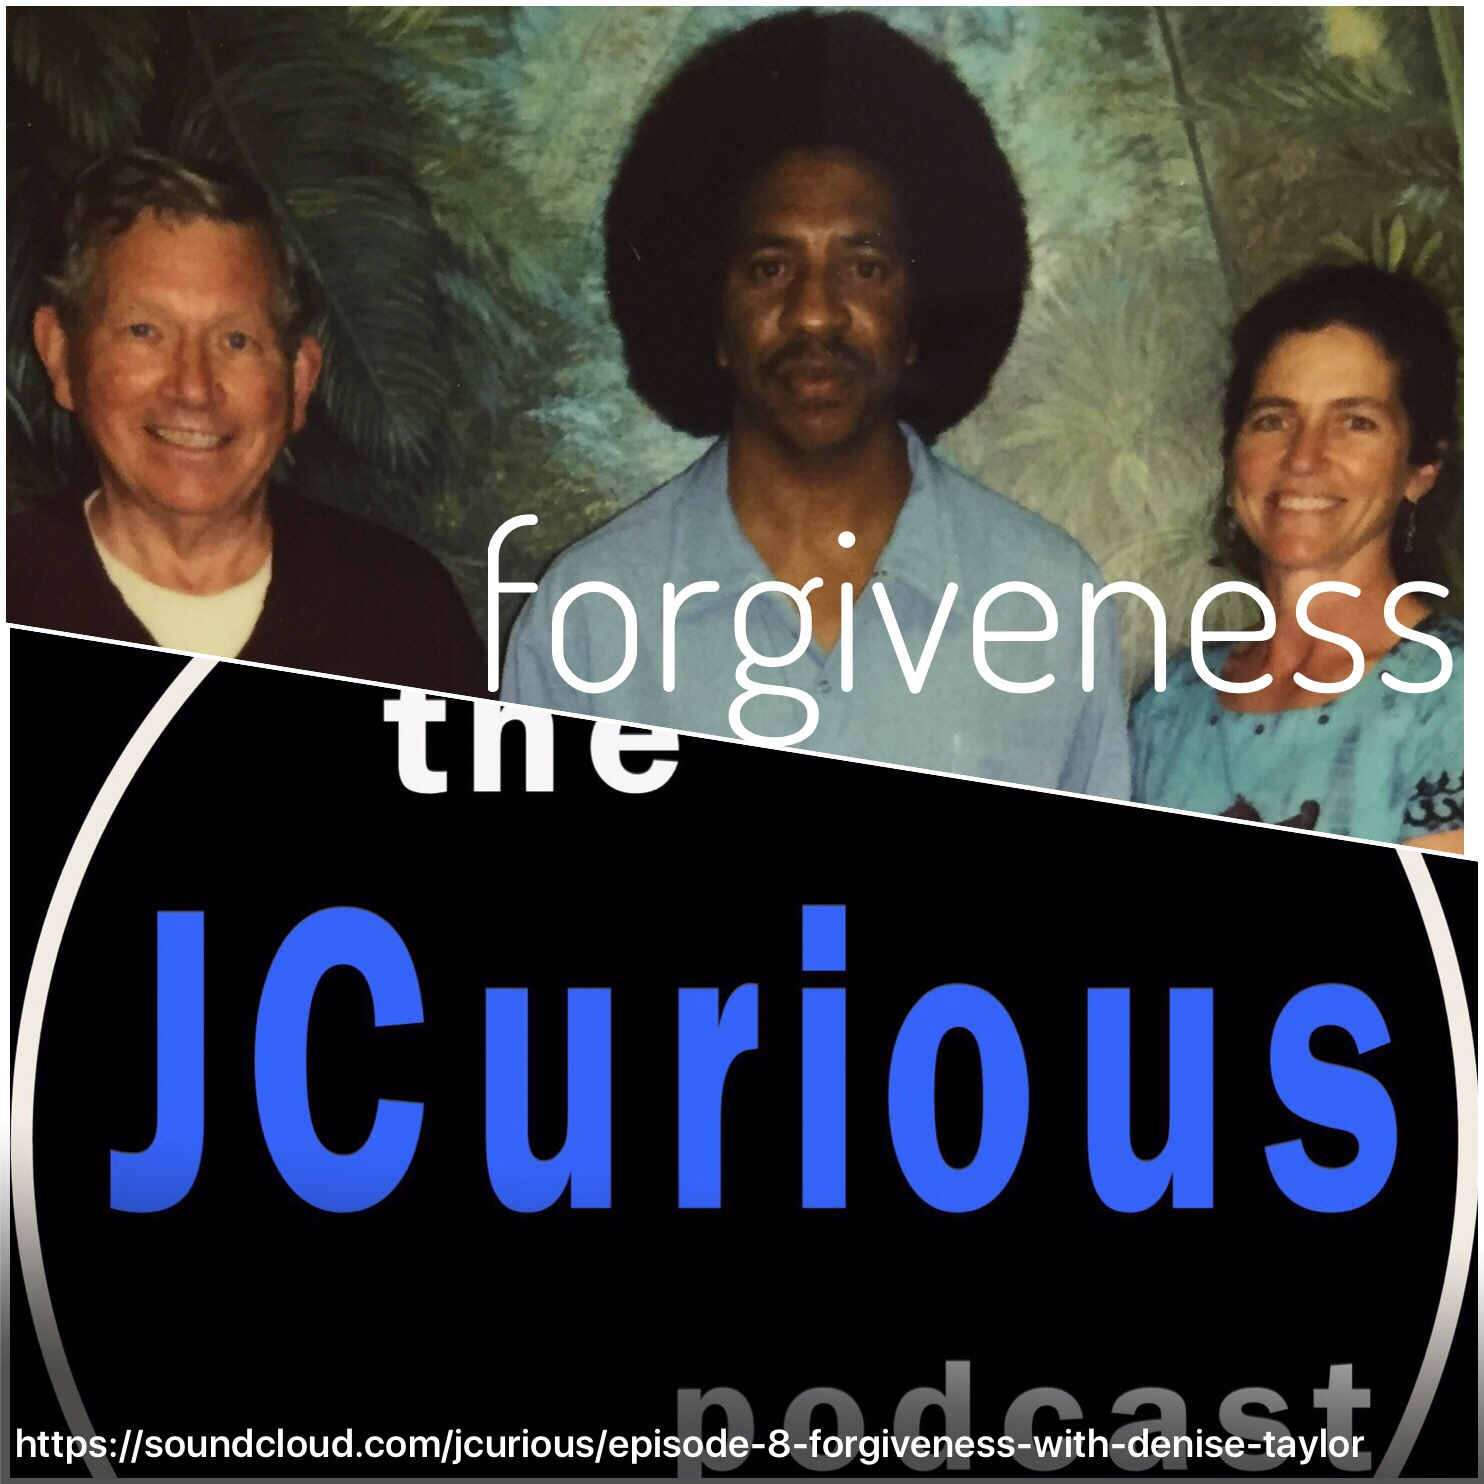 The JCurious Podcast https://soundcloud.com/jcurious/episode-8-forgiveness-with-denise-taylor by Jakewisdom